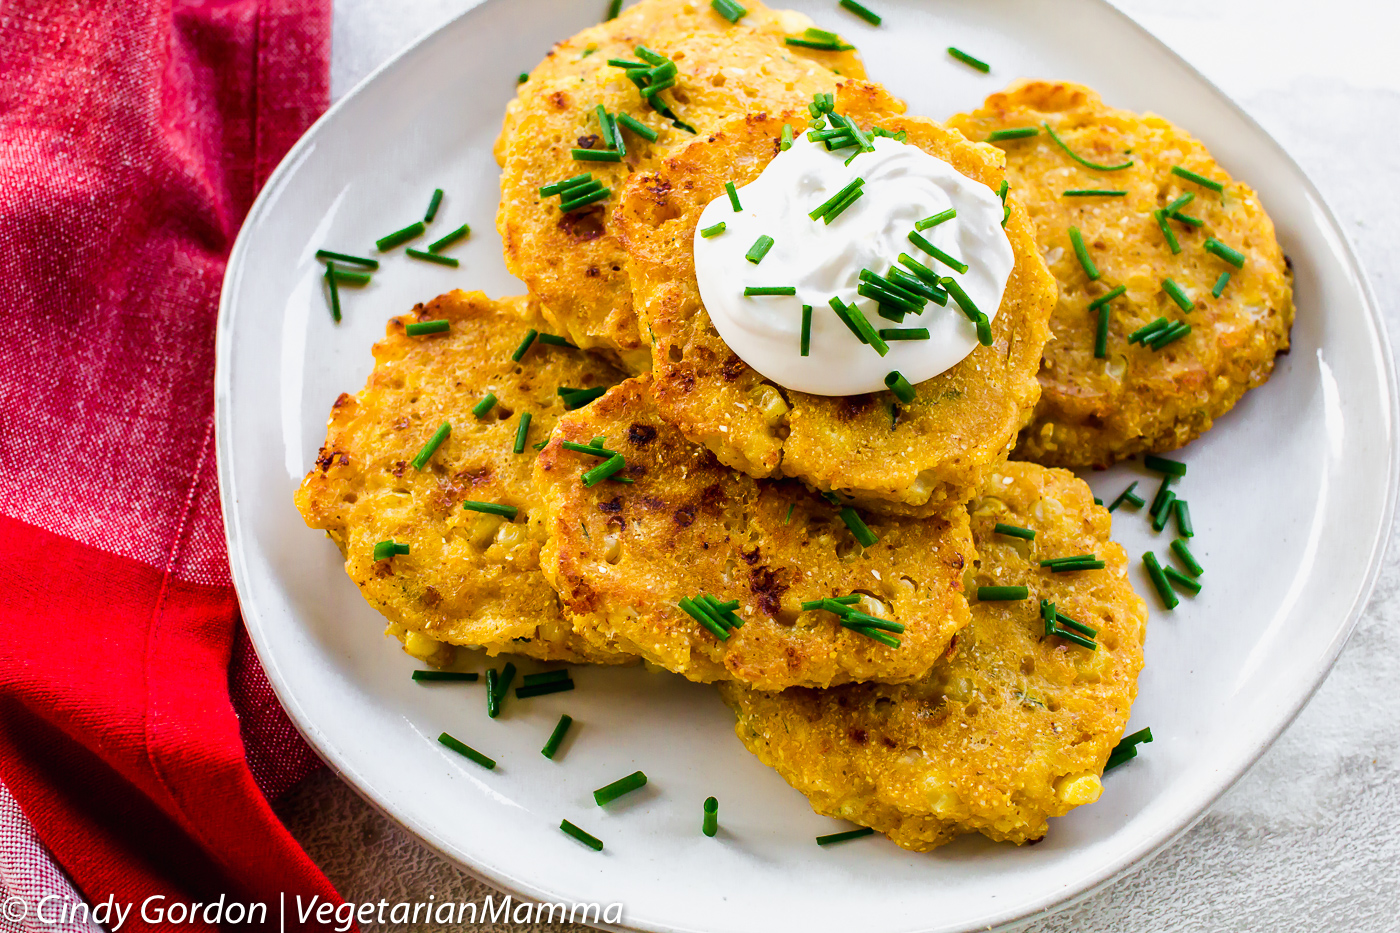 Zucchini corn Cakes or Zucchini Fritters are the perfect dinner for this weekend.